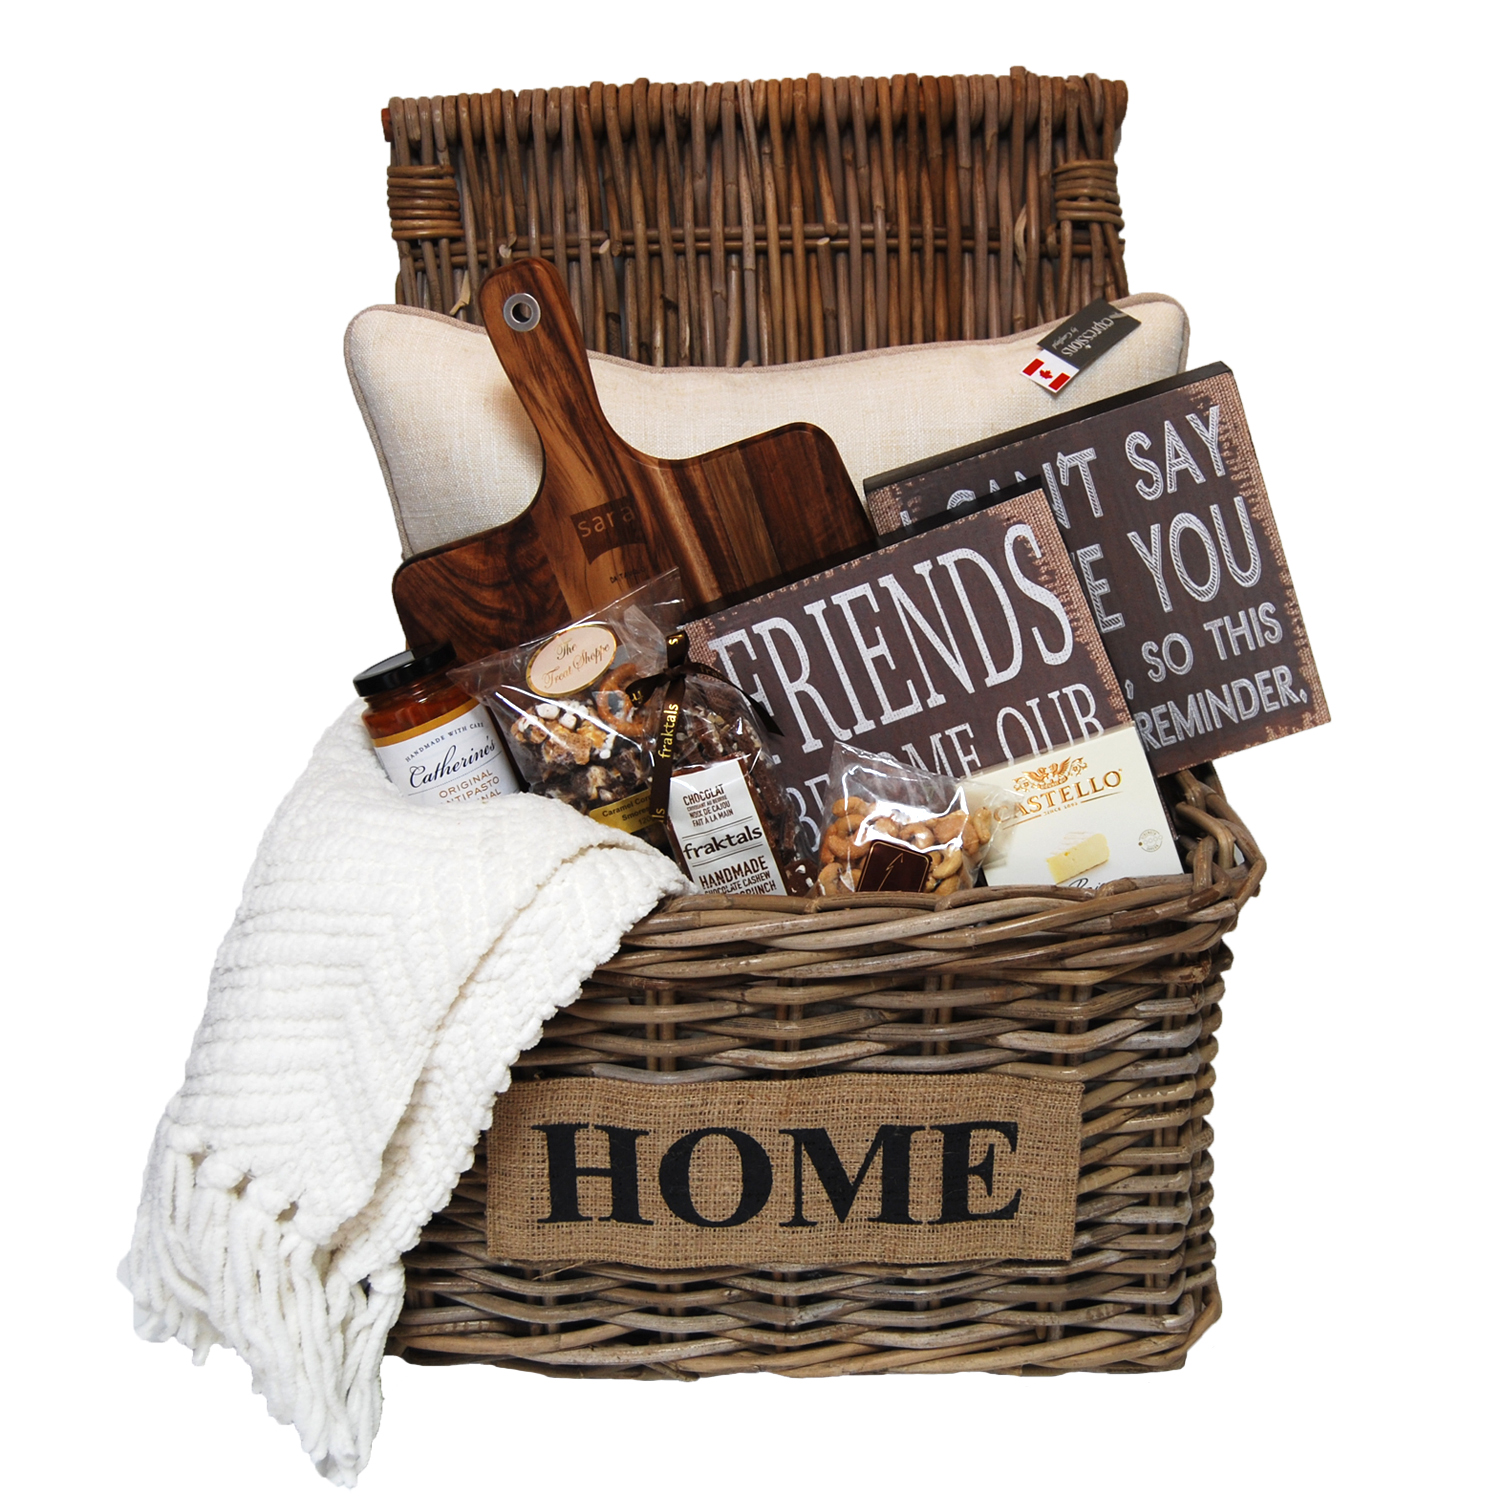 Home Decor   Excellent Choice Baskets  EC Baskets Welcome Home Lg